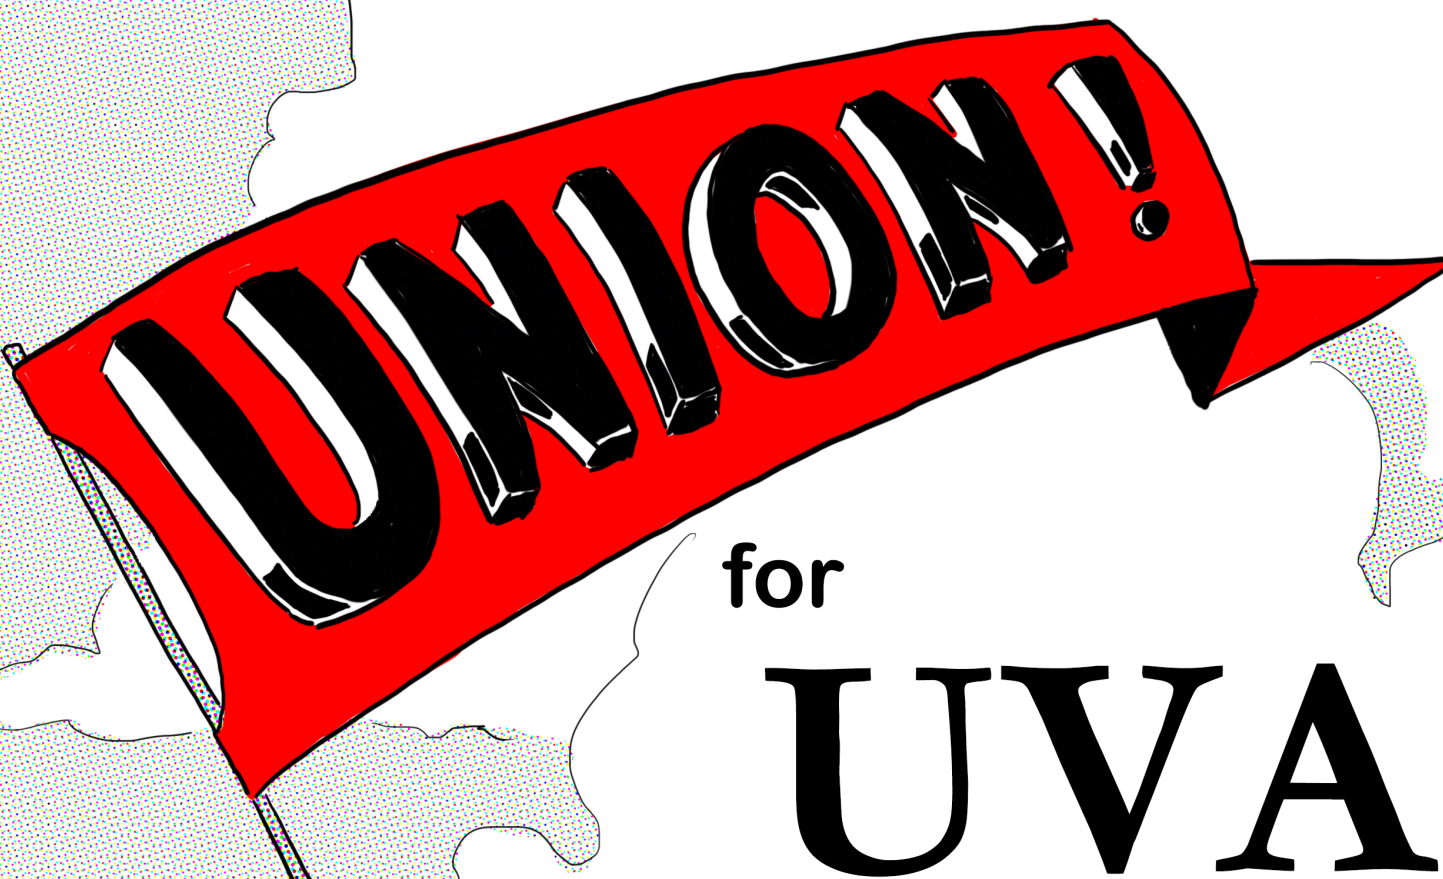 """ID: Text: """"Union for UVA"""" with red triangle flag over a white UVA rotunda, with white clouds in background"""